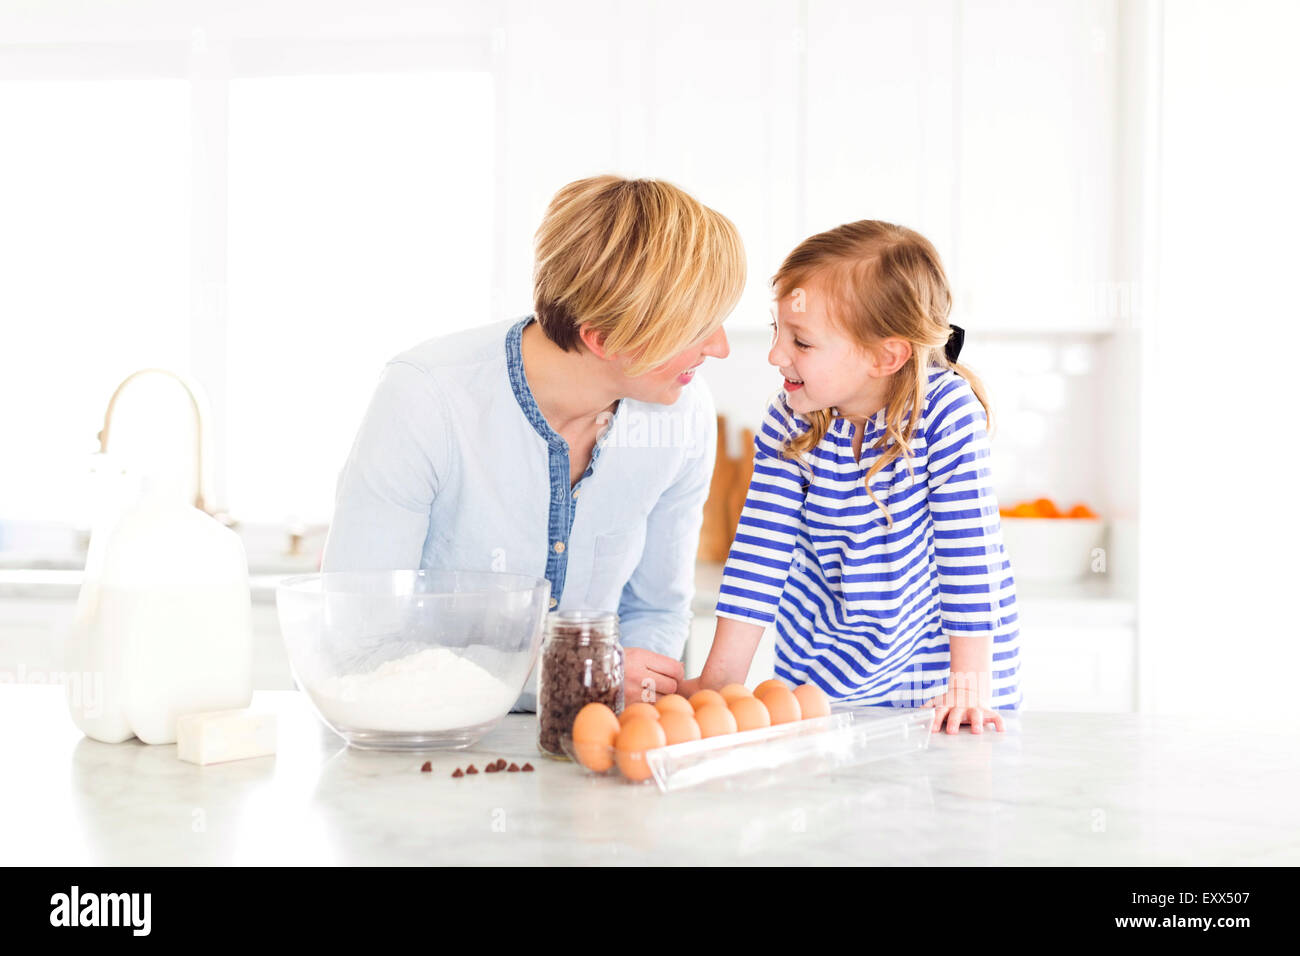 Girl (4-5) talking with mom in kitchen - Stock Image